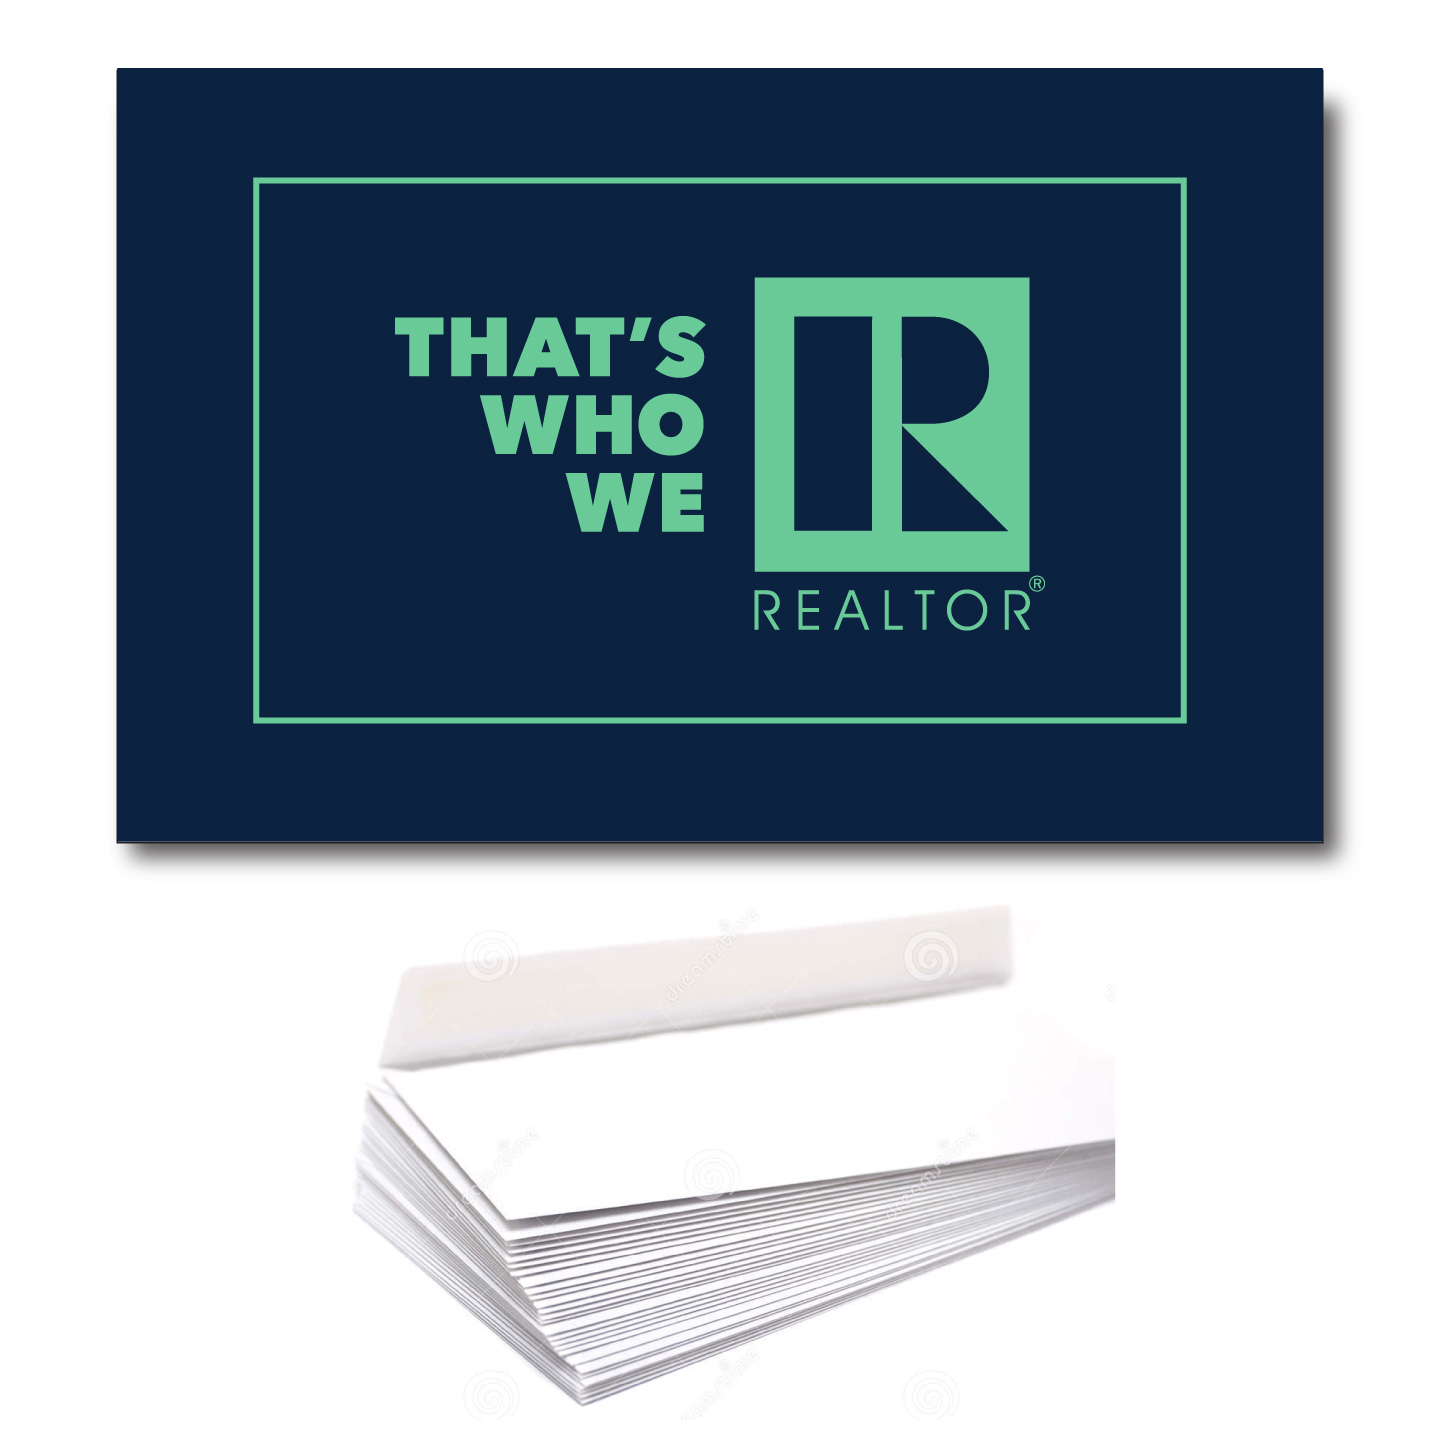 Thats Who We R Notecard/Greeting Card Set twwr,ThatsWhoWeR,Thats,TWWR,ThatWho,ThatsWho,Twwr,Thats,Whos,We,Ares,RTS4013,Notes,Cards,Greetings,Notecards,Envelopes,Mailings,Thanks,Thankyous,TWWR,Thats,Whos,Wes,Ares,